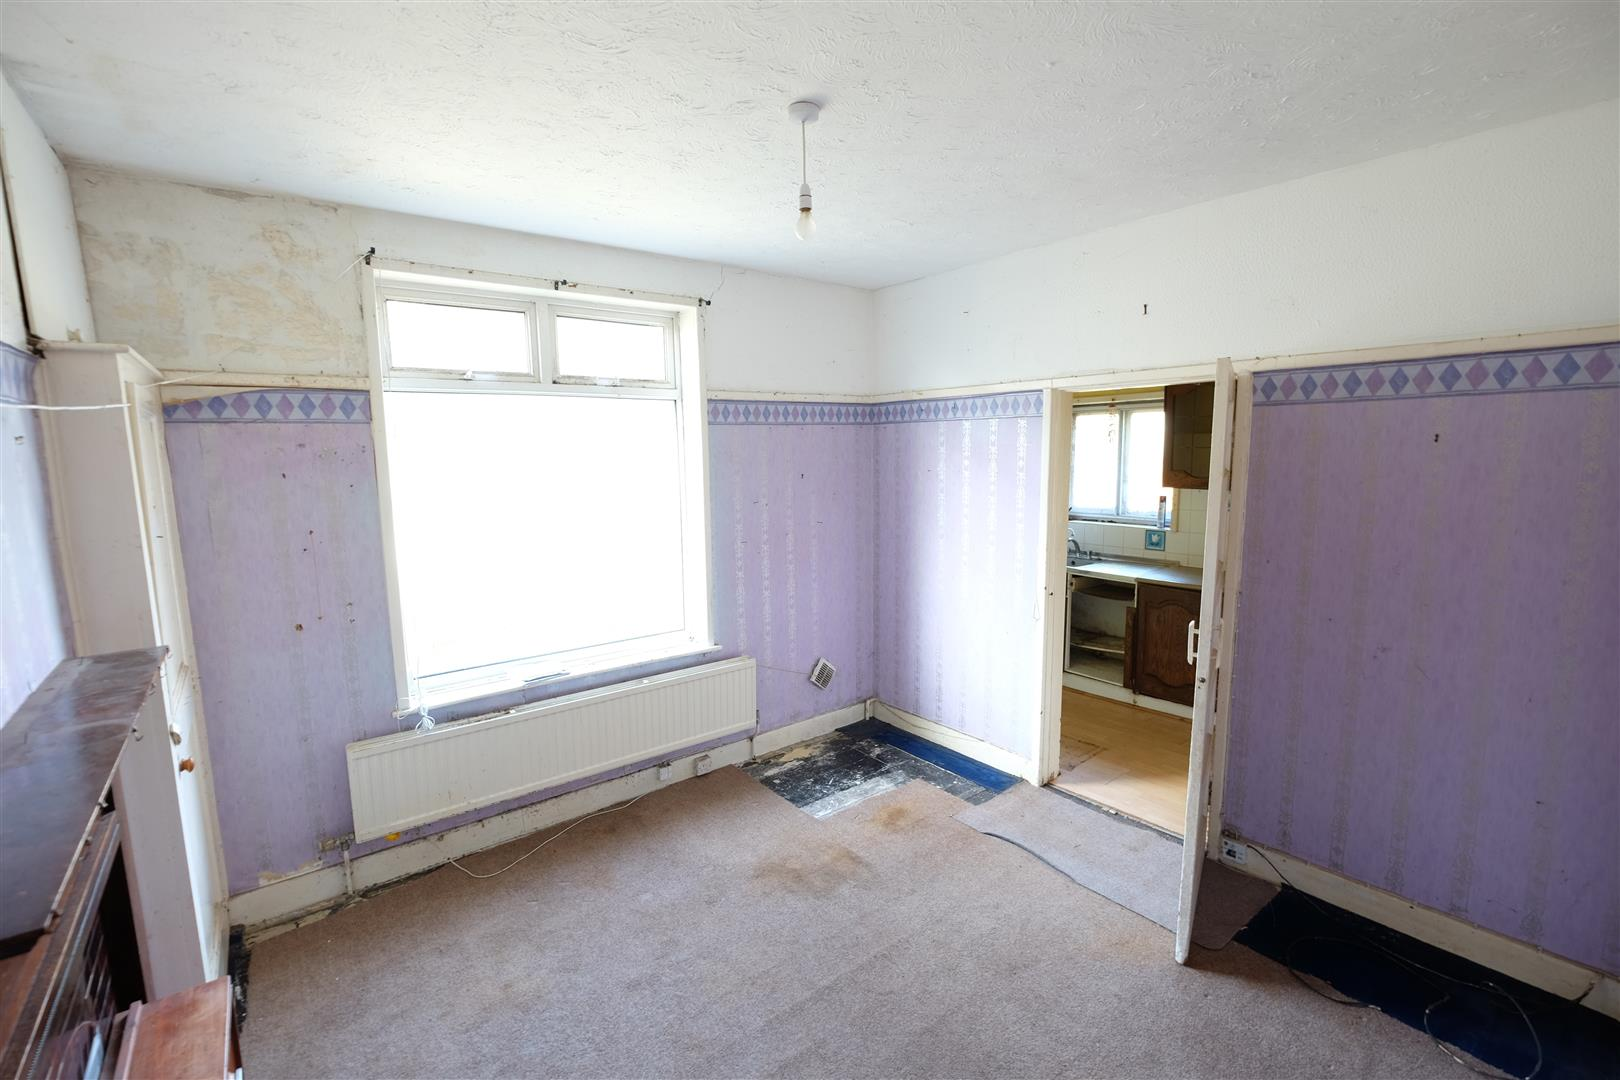 Images for BUNGALOW FOR MODERNISATION EAID:hollismoapi BID:11